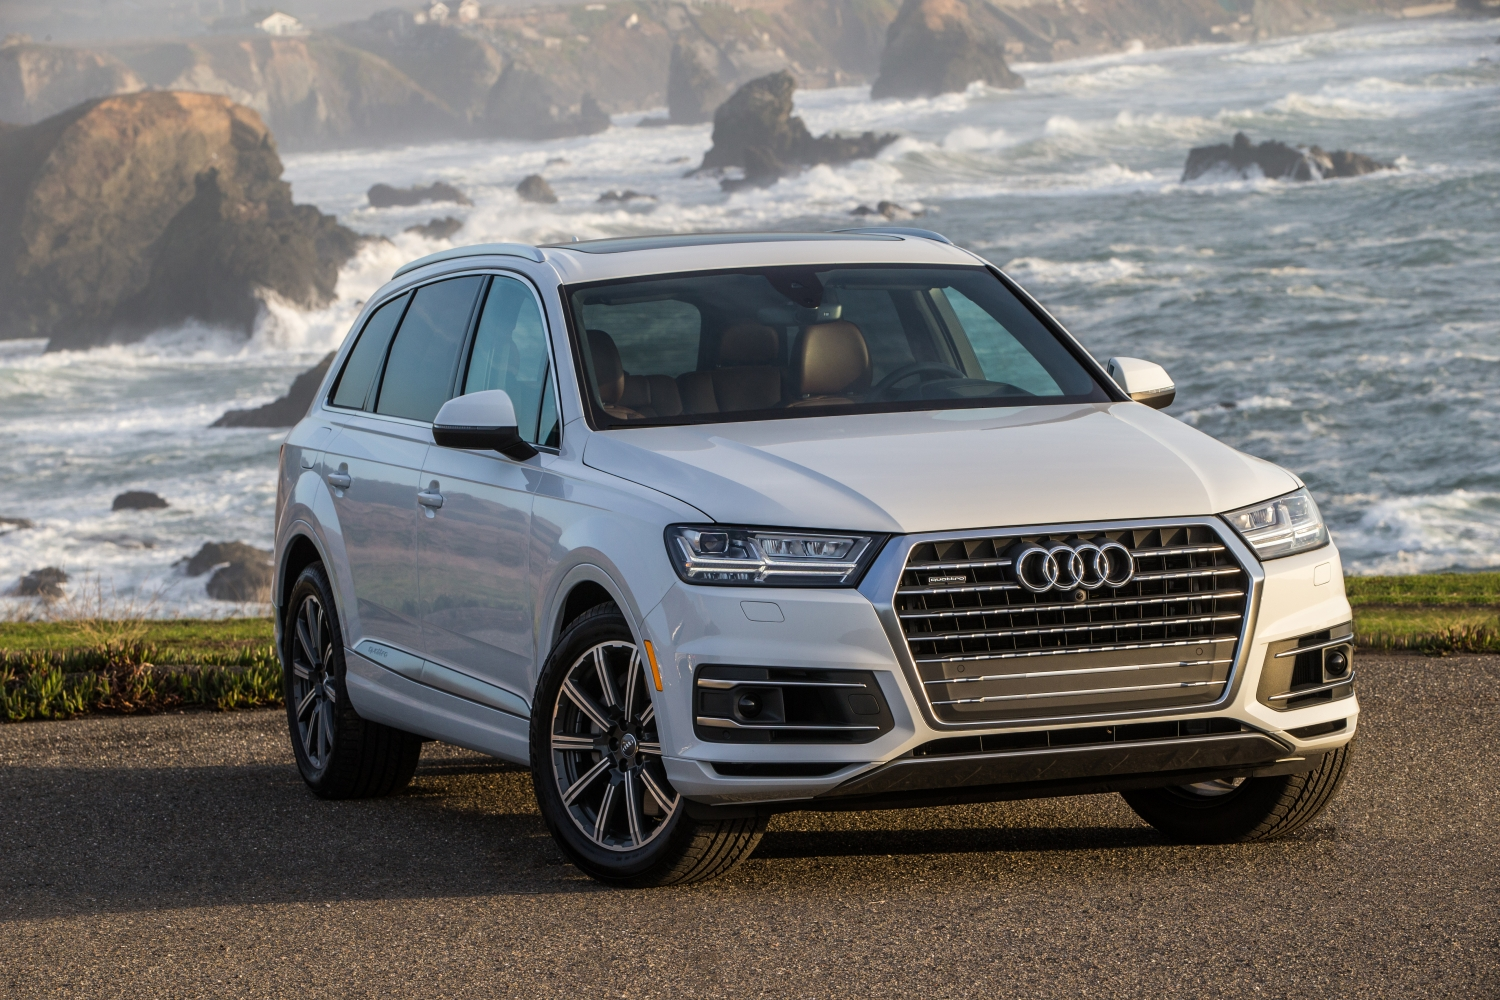 new and used audi q7 prices photos reviews specs the car connection. Black Bedroom Furniture Sets. Home Design Ideas